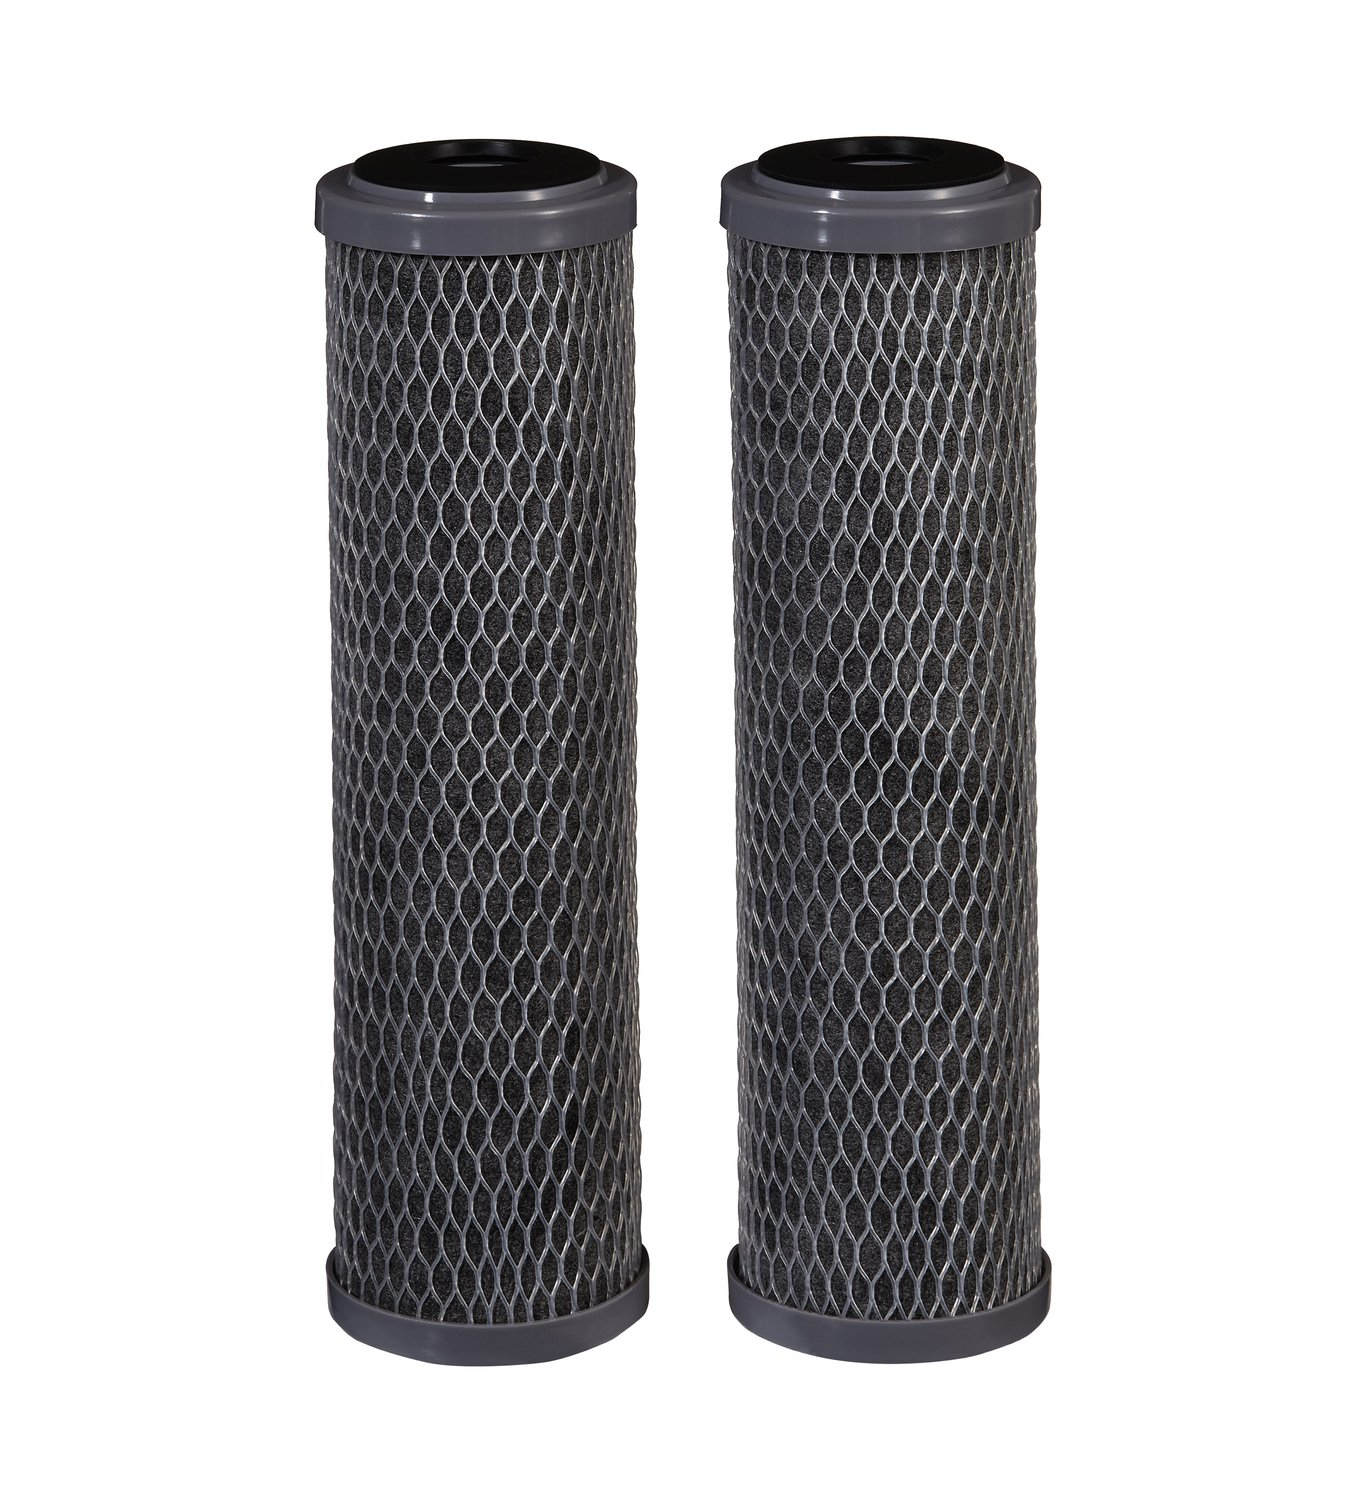 Filtrete Standard Capacity Whole House Carbon Wrap Water Filters